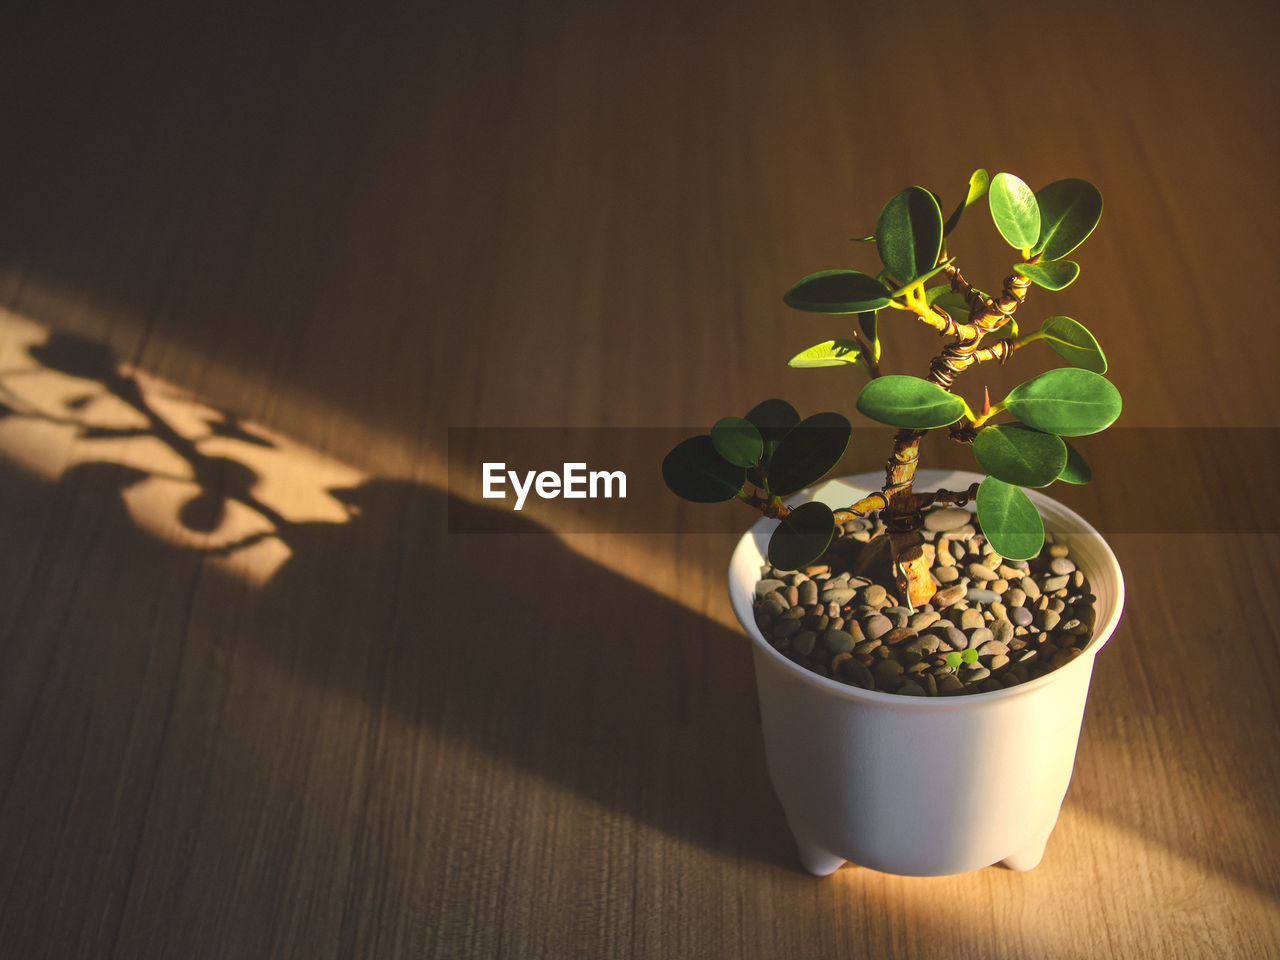 Ficus bonsai in white pot and sunshine morning placed on wooden floor, air purifying plants.